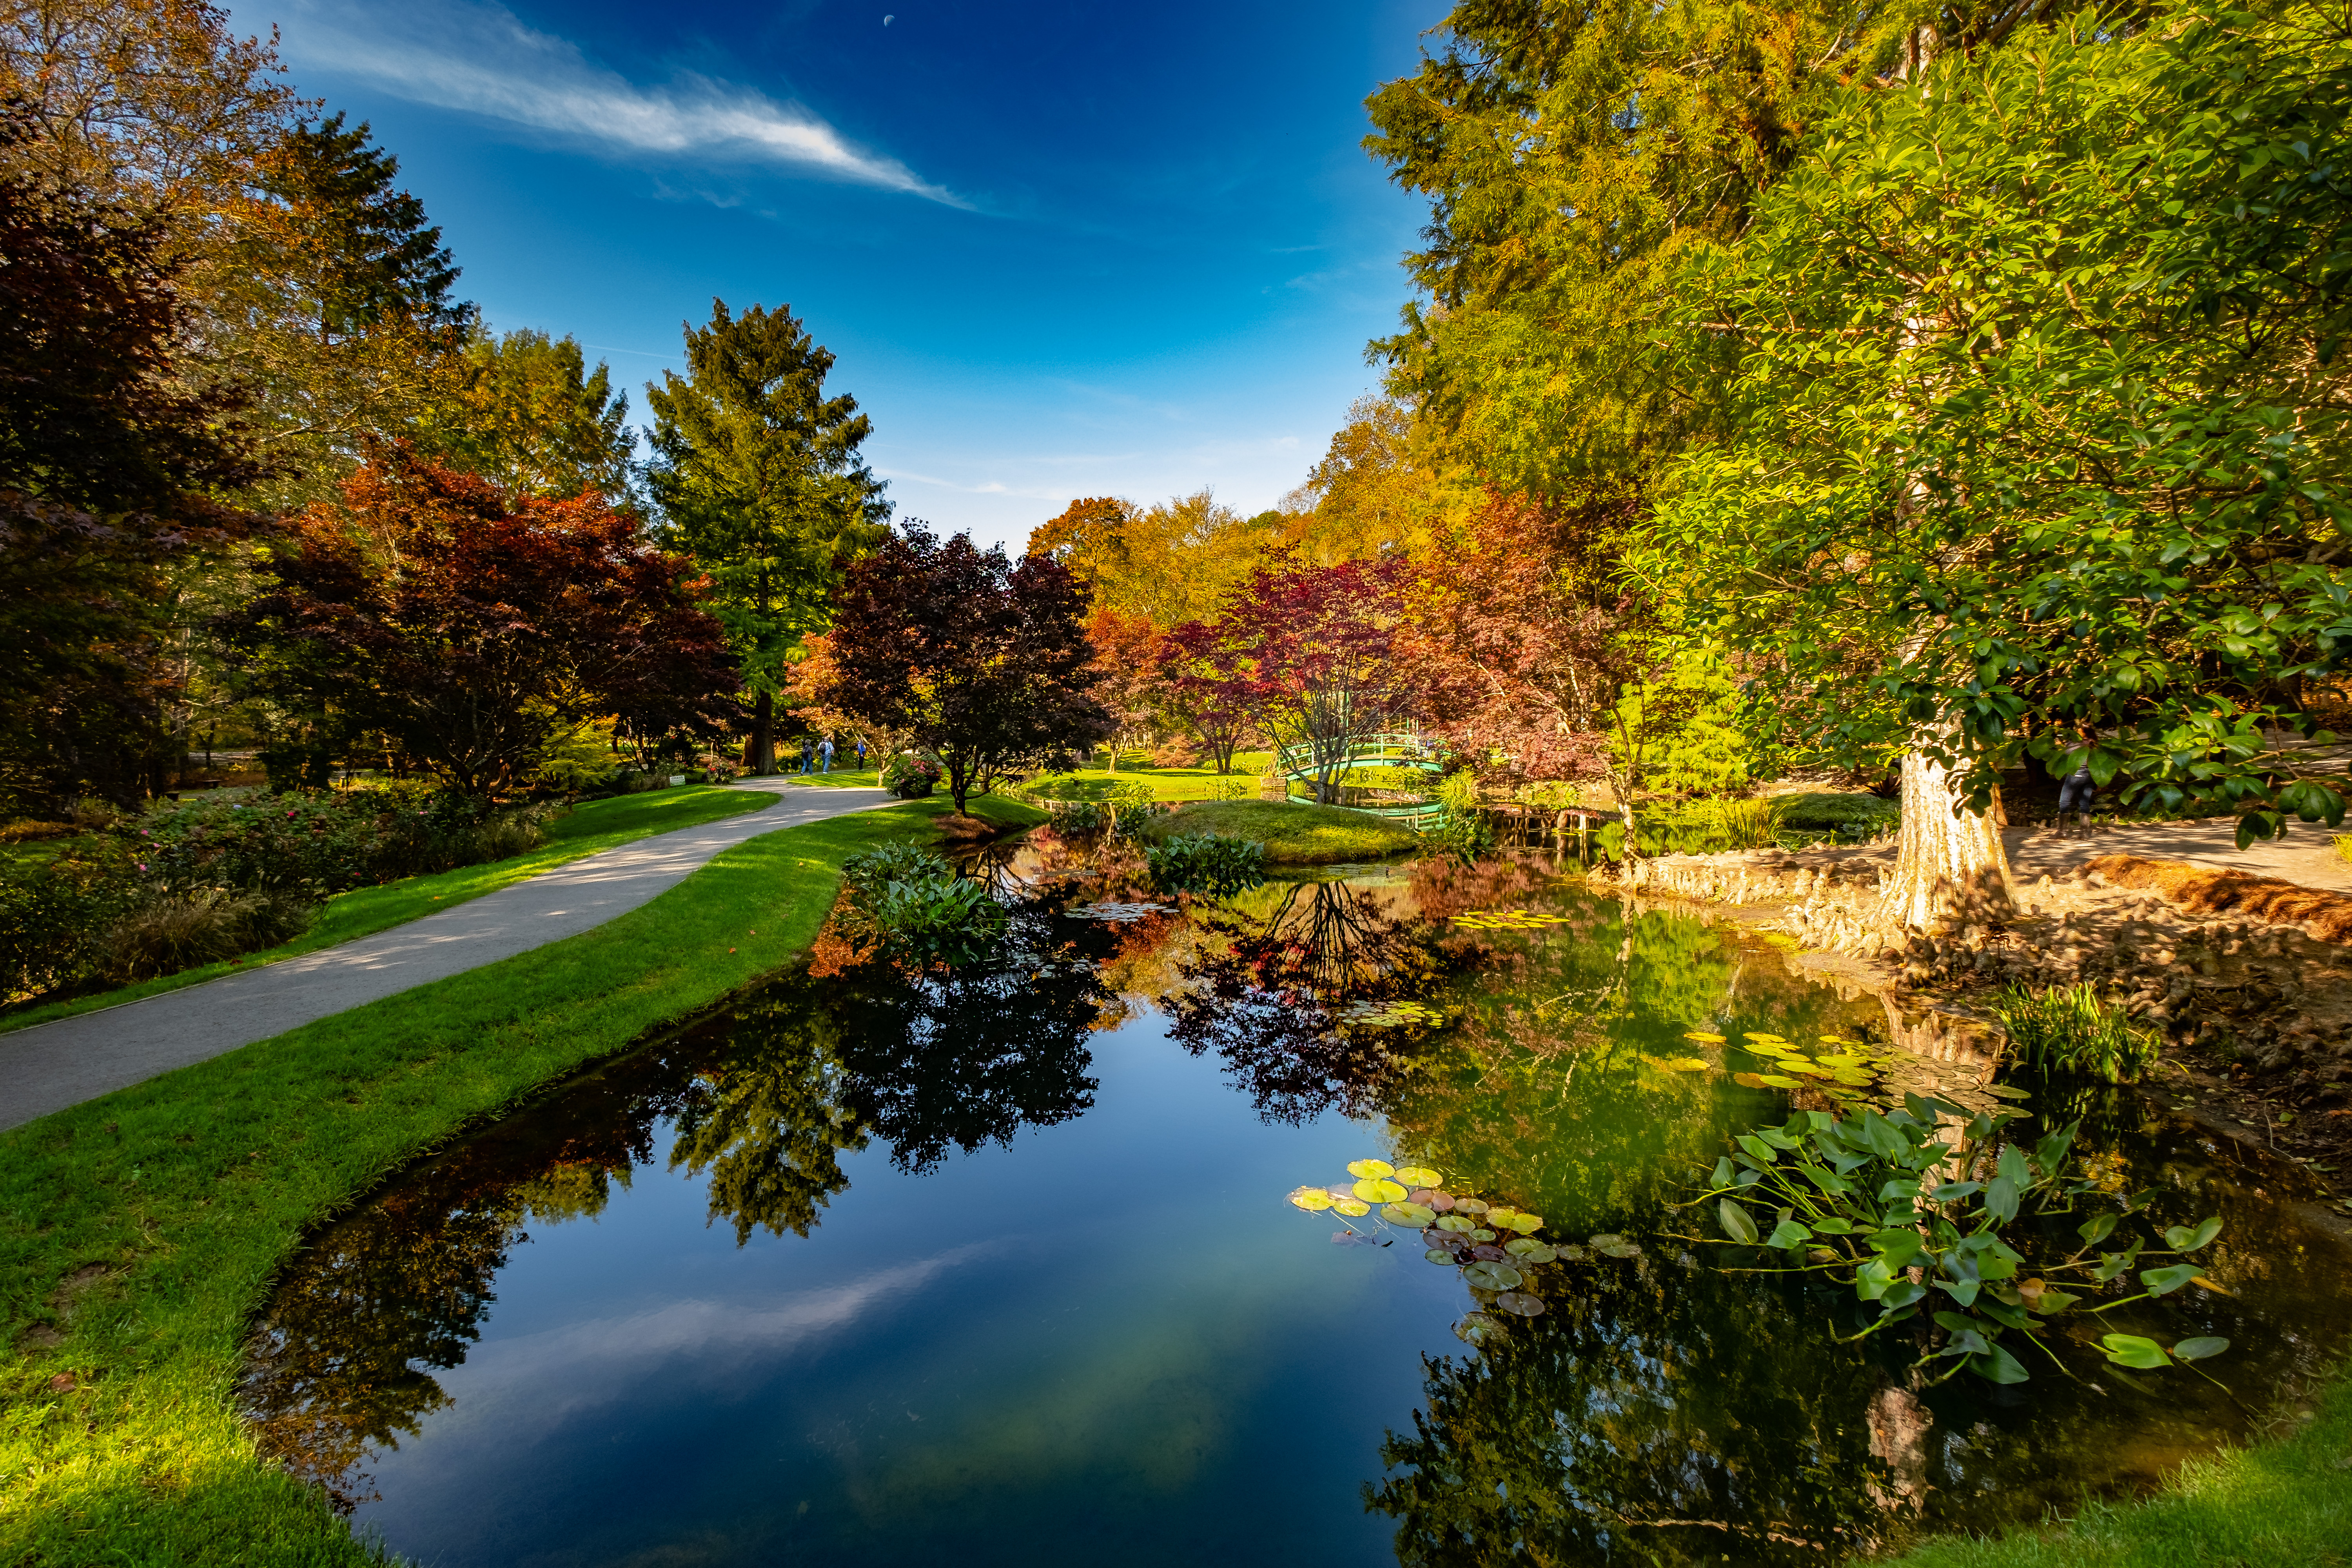 Looking for fall color at Gibbs Gardens